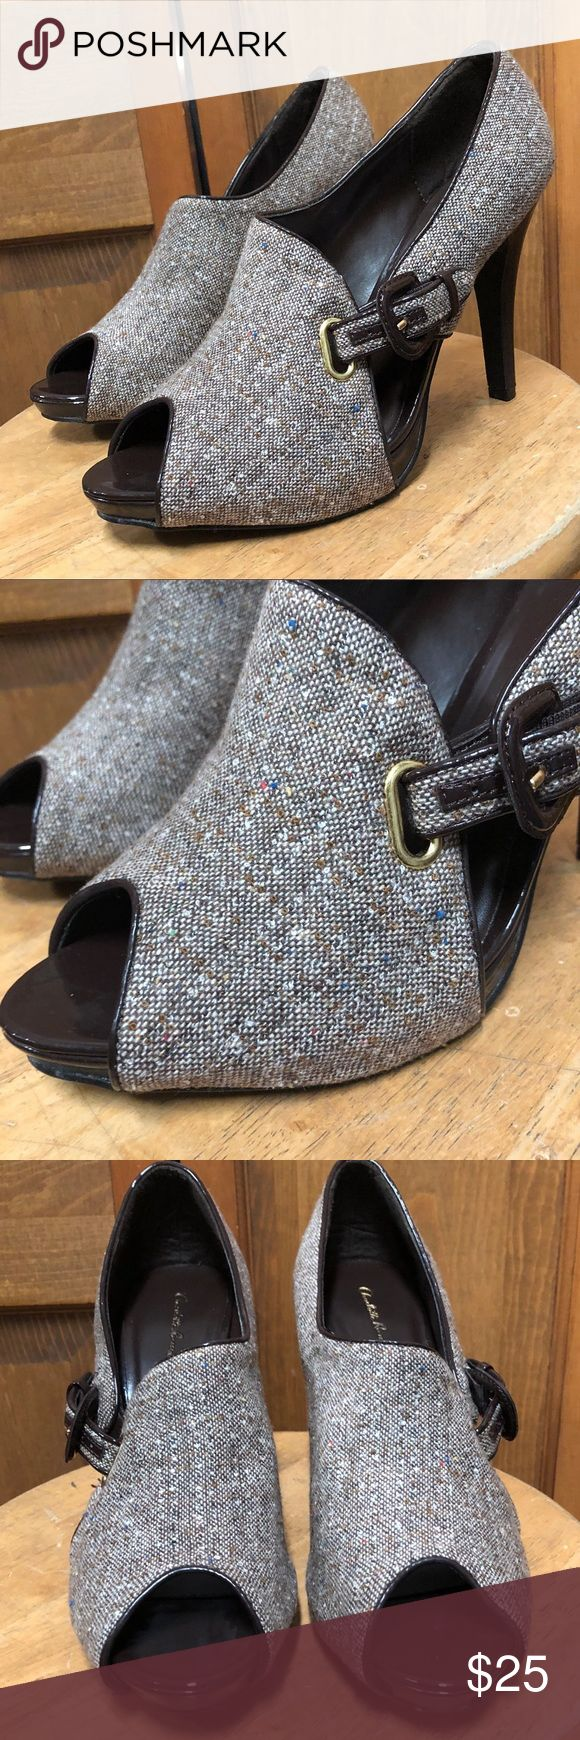 """Charlotte Russe • Tweed Peep Toe Heel Booties 10 Buckle Closure  Tweed material  patent trim  Peep Toe platform (approx: 0.75"""")   💛Like this item for pricing updates    💛Items ship out ASAP (usually next business day)   💛Answer to Questions / Measurements asked for after 6pm/before 12 Or on Sunday will be delayed but feel free to ask!   💛Save 15% by purchasing more than one item!   💛Measurements are Approximate   💛Keywords: work Career Brown shoes heel ankle boots Charlotte Russe Shoes…"""